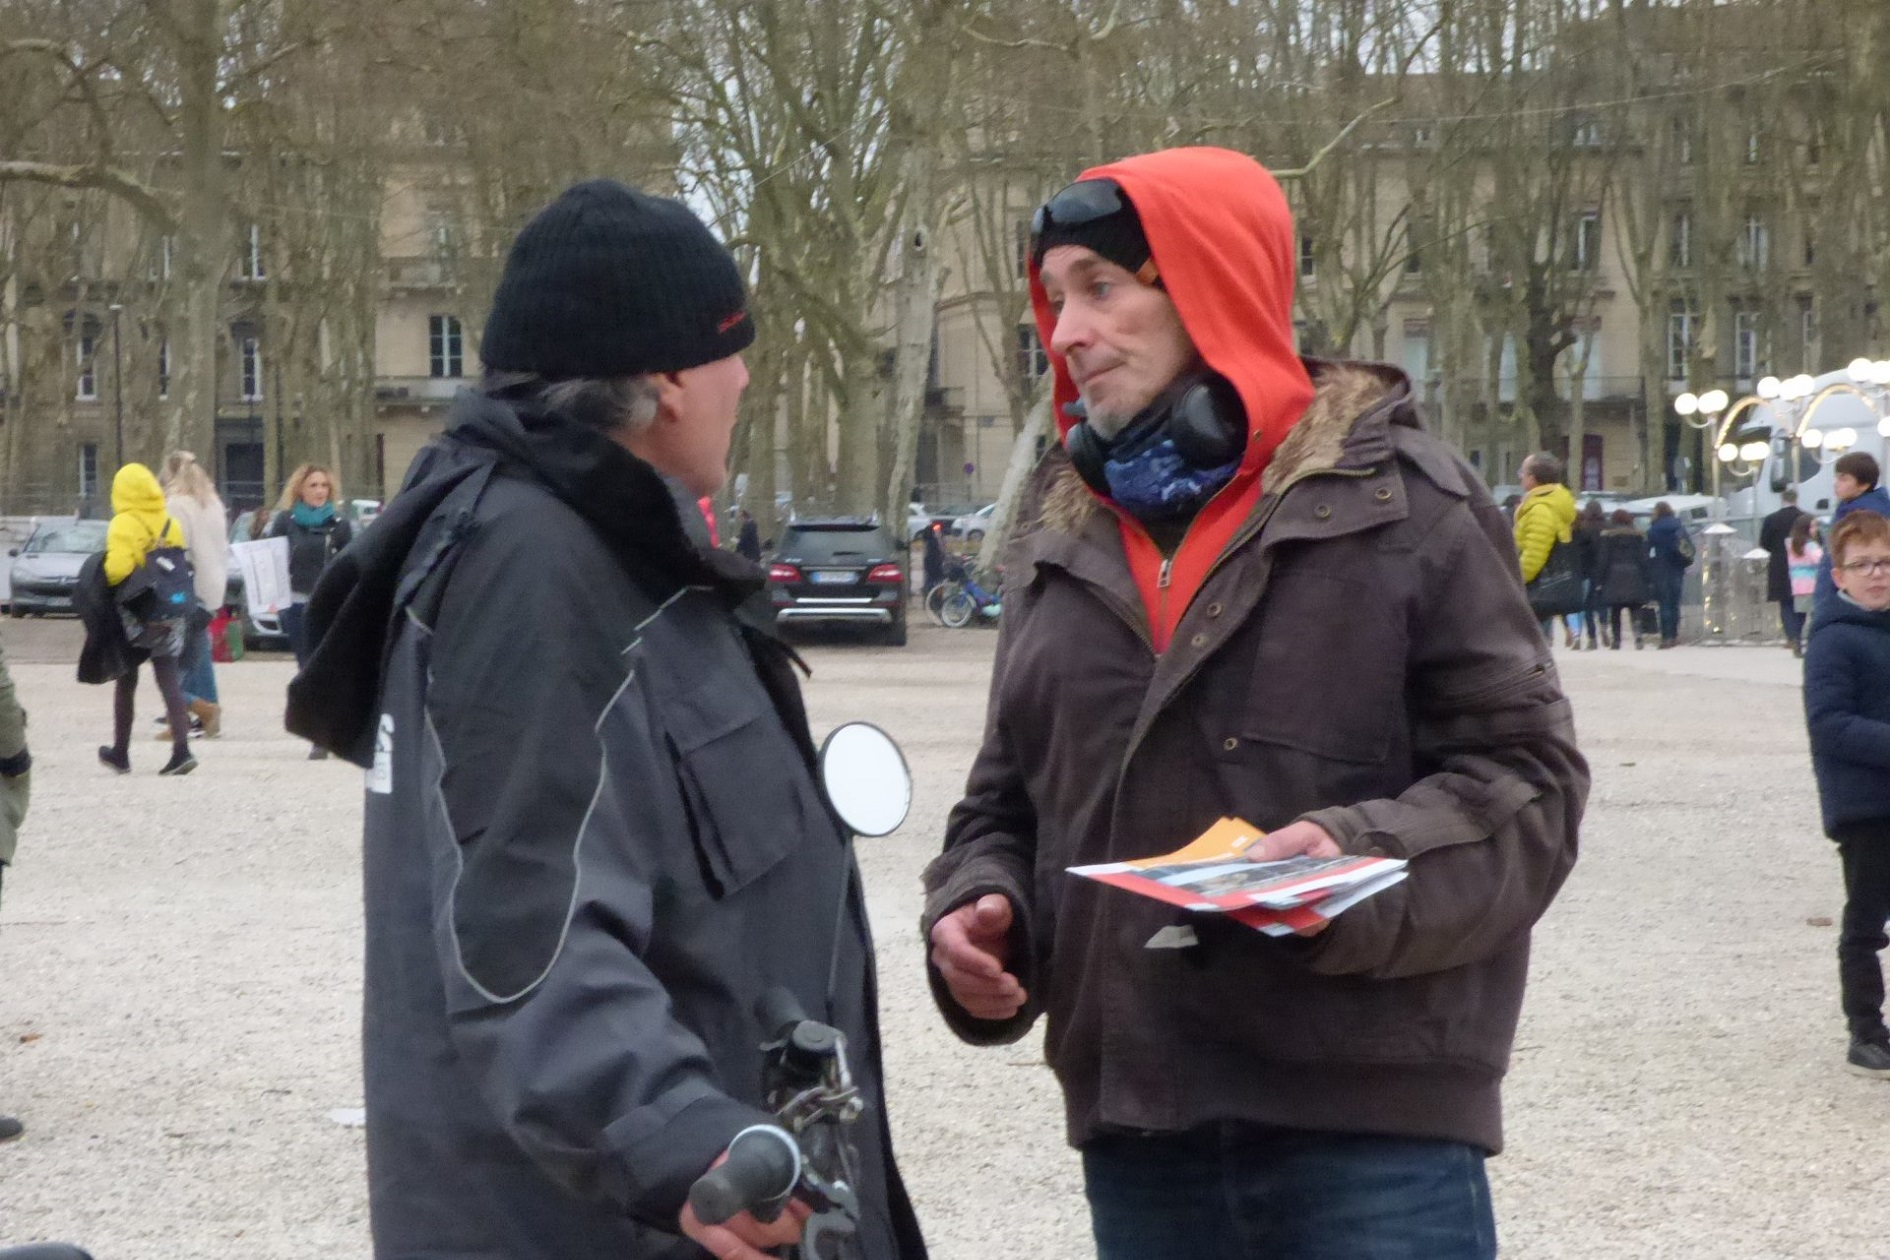 acta_gruss_bordeaux_2020_tracts_2